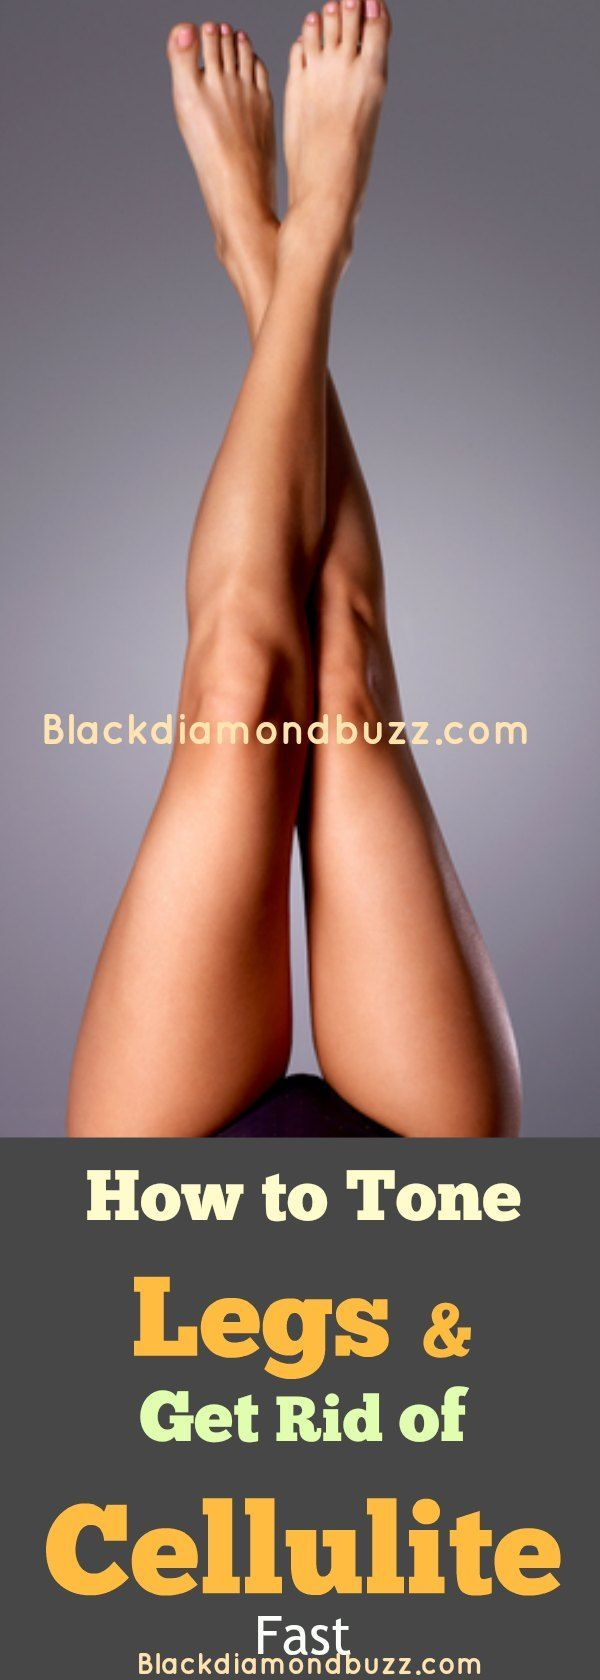 Best Exercises to Get Rid of Cellulite on Buttocks and Thighs Fast